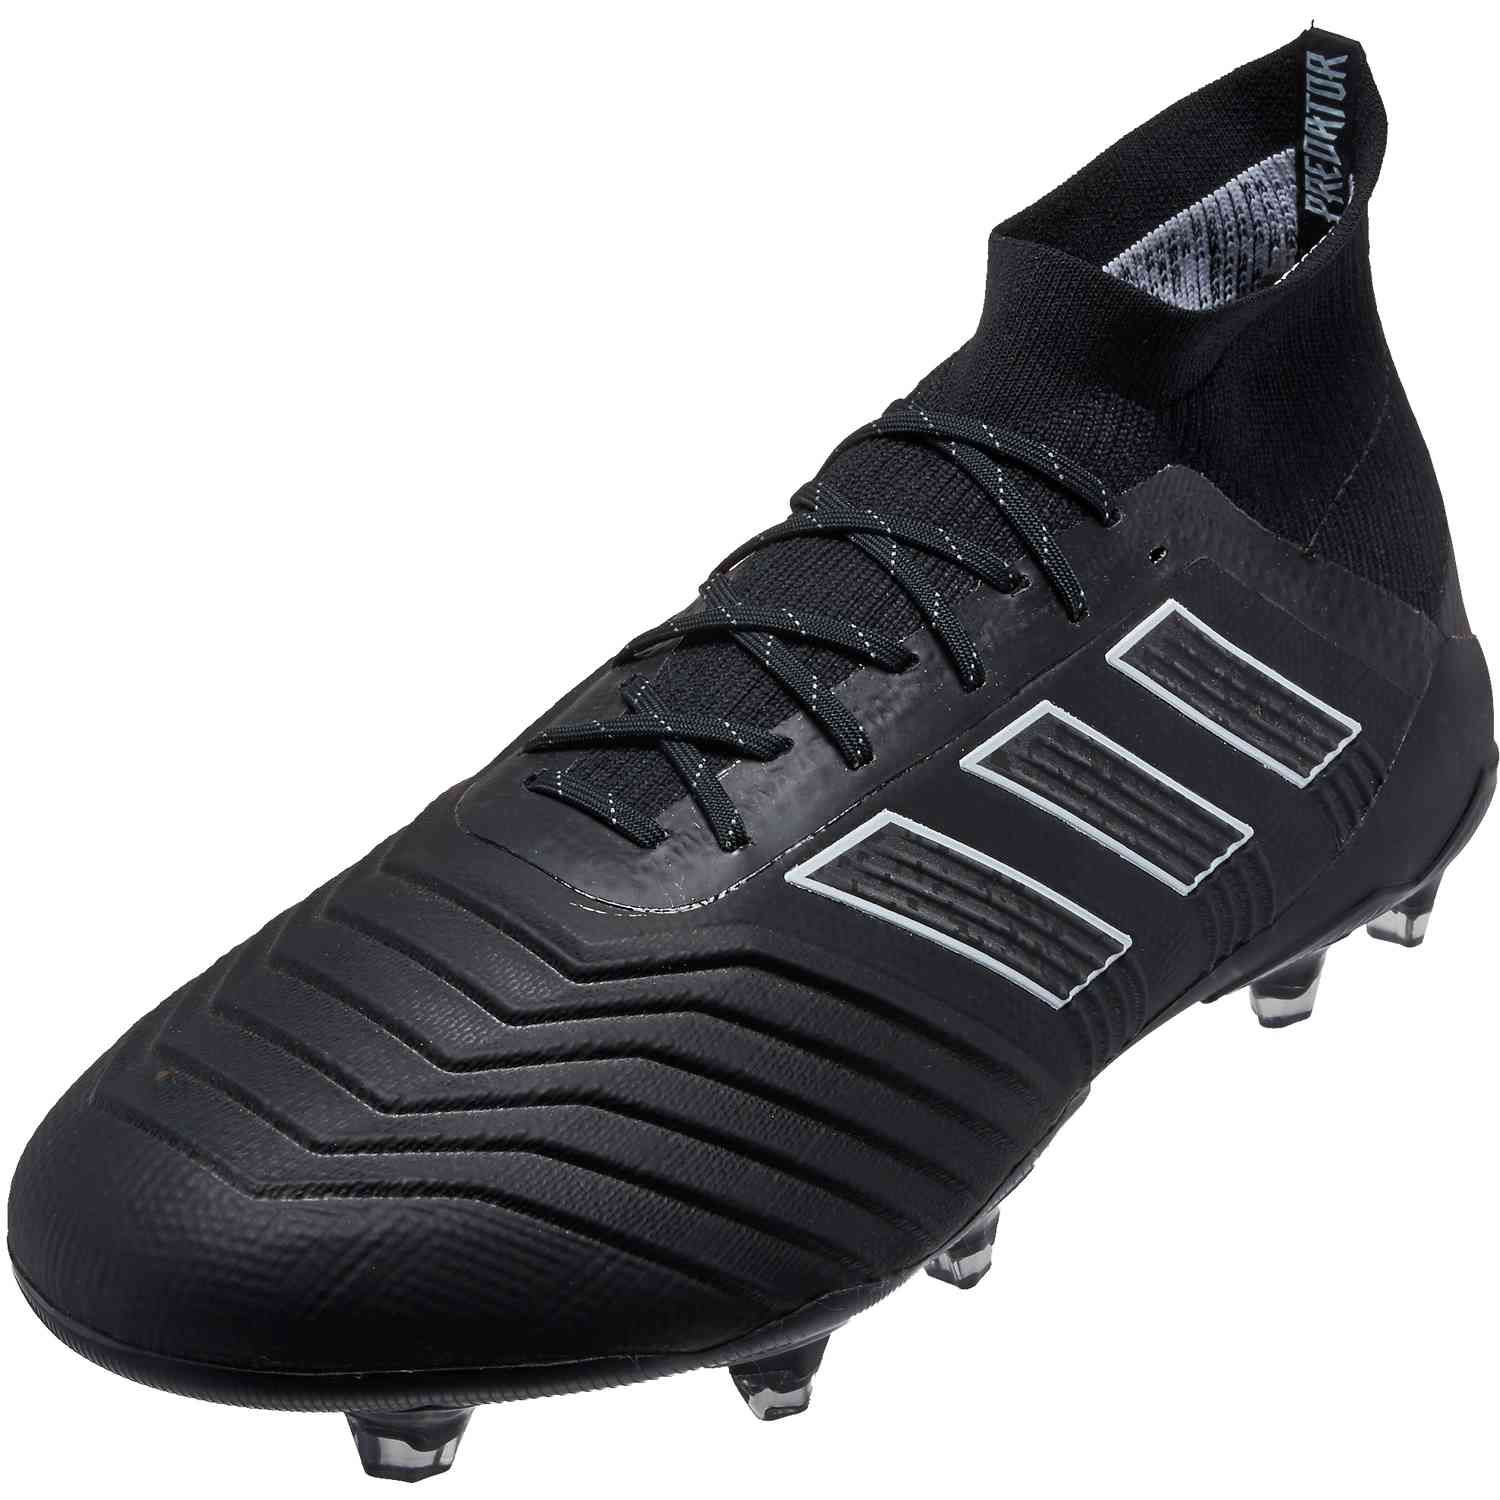 10d9e680f00606 Shadow Mode pack adidas Predator 18.1 Buy it from SoccerPro.